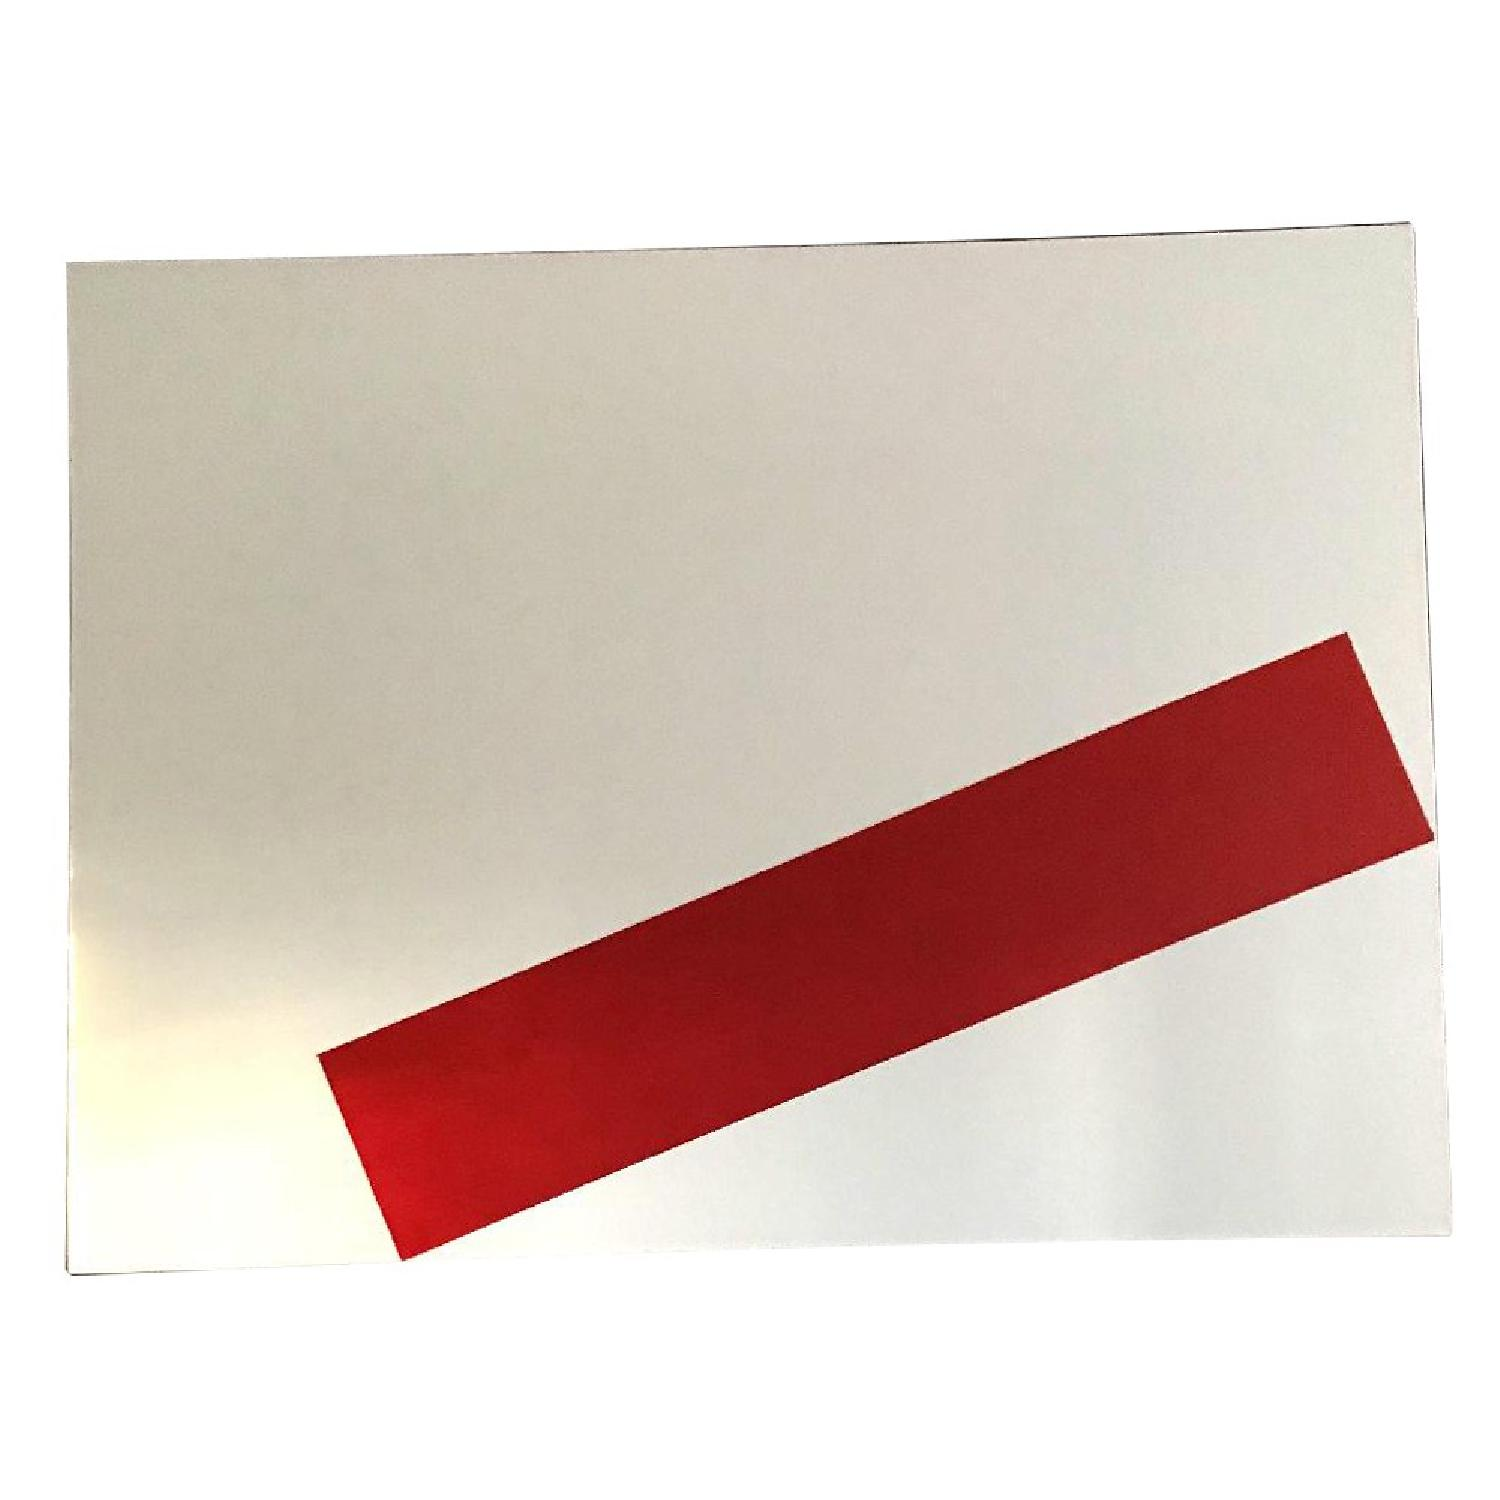 Red Rectangle Original Painting Acrylic on Canvas